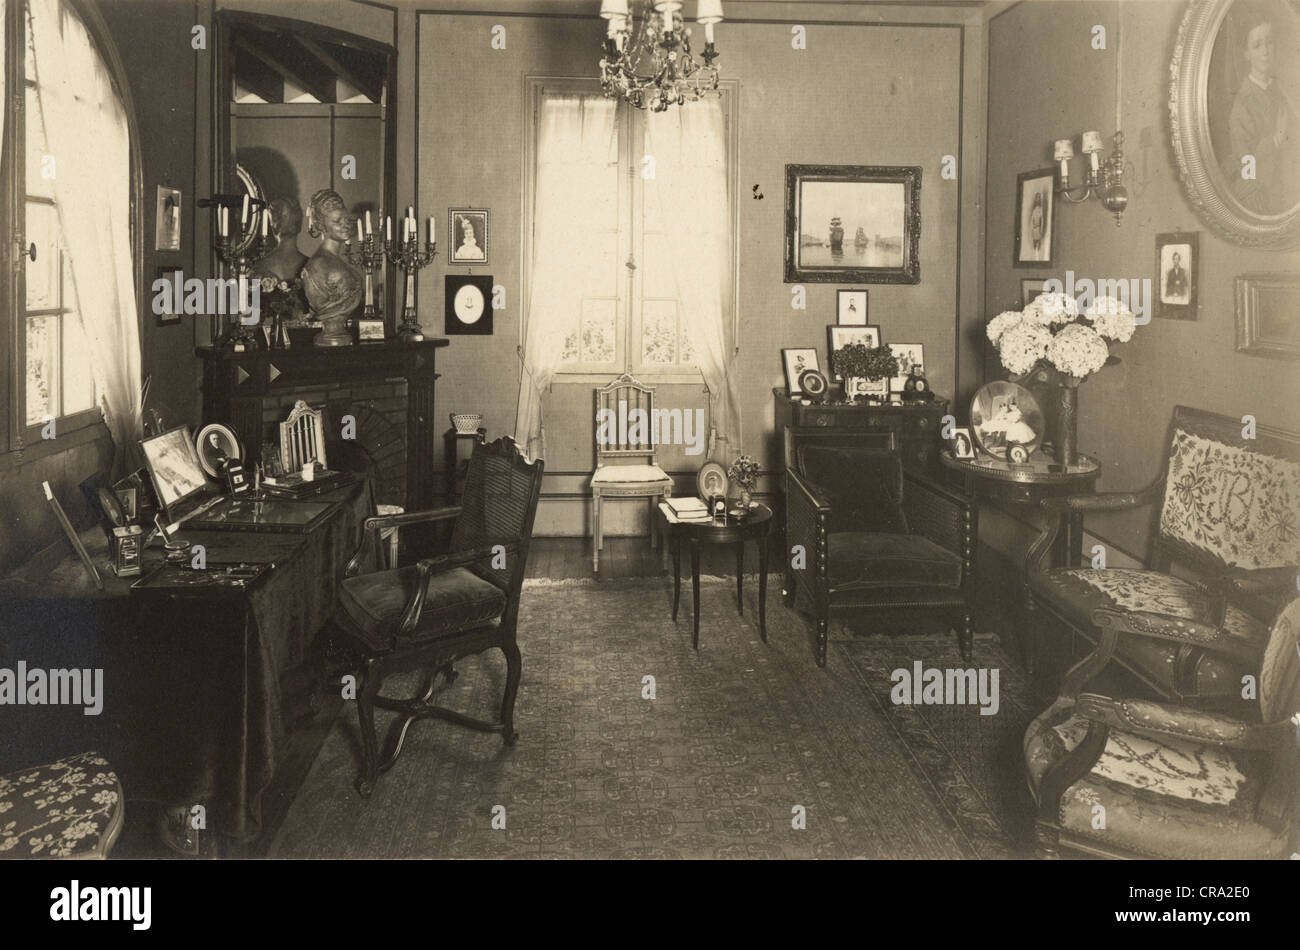 Interior of Wealthy Family's Salon c. 1910 - Stock Image